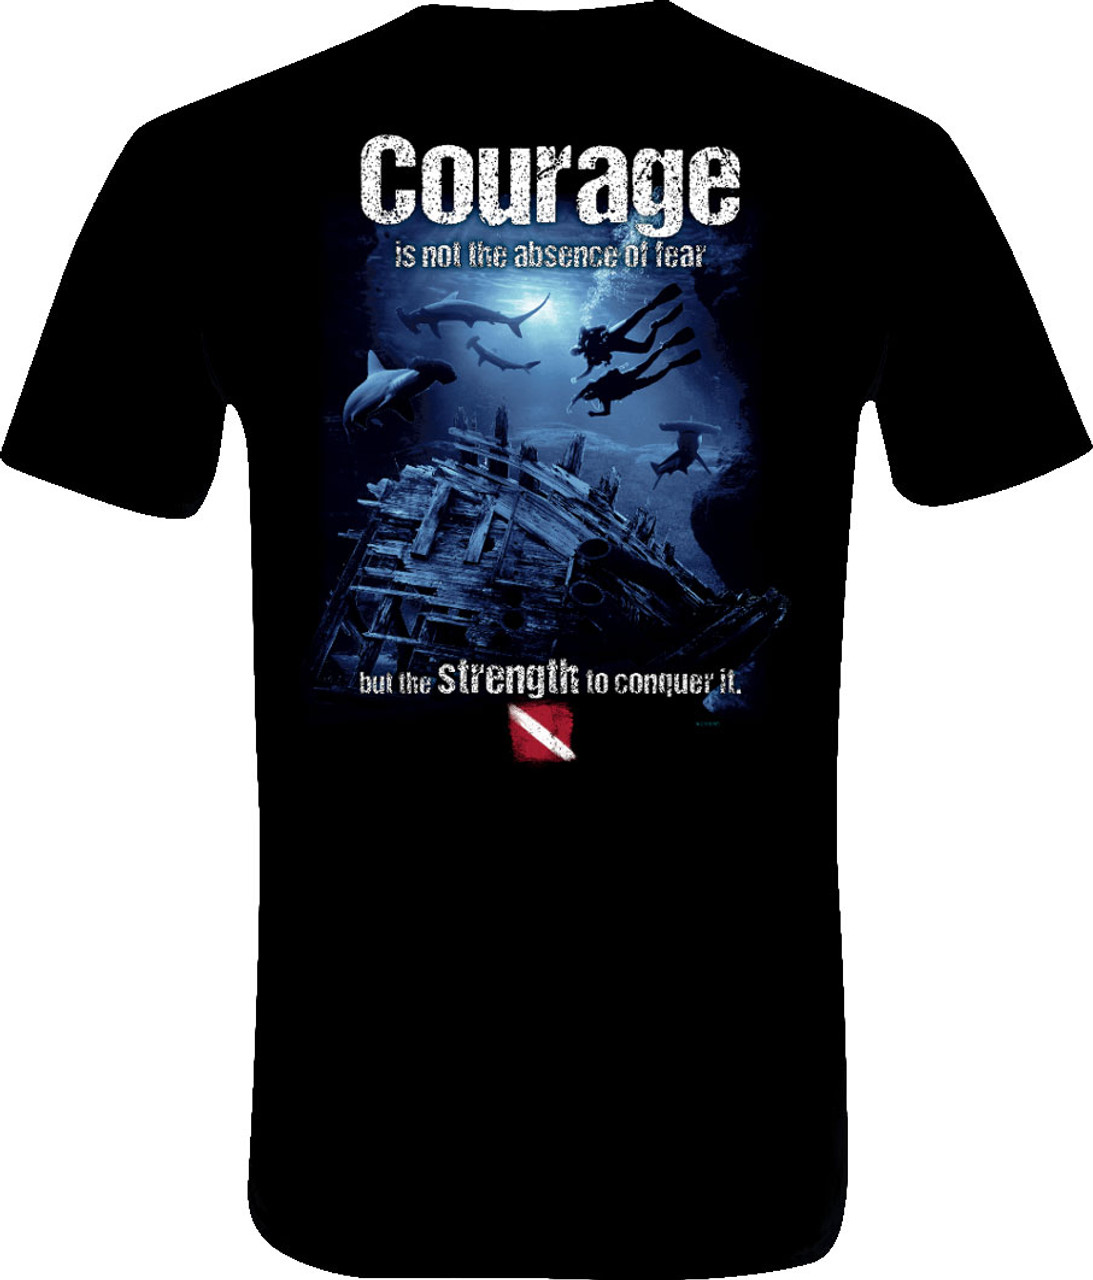 Amphibious Outfitters Scuba Diving T-Shirt - Courage - Black